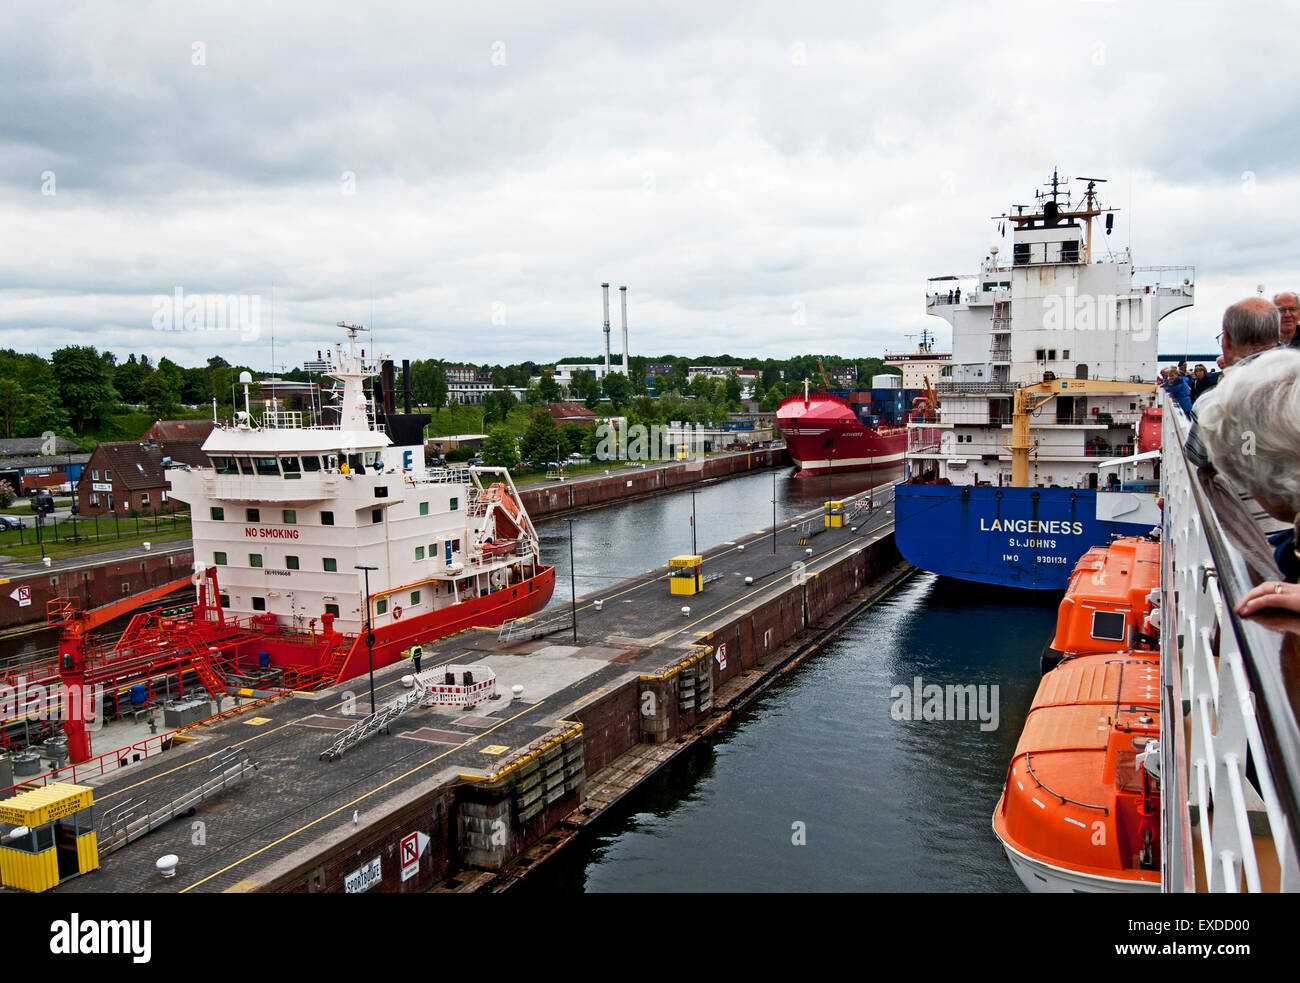 Ships in the Kiel-Holtenau Lock of the Kiel Canal - Stock Image